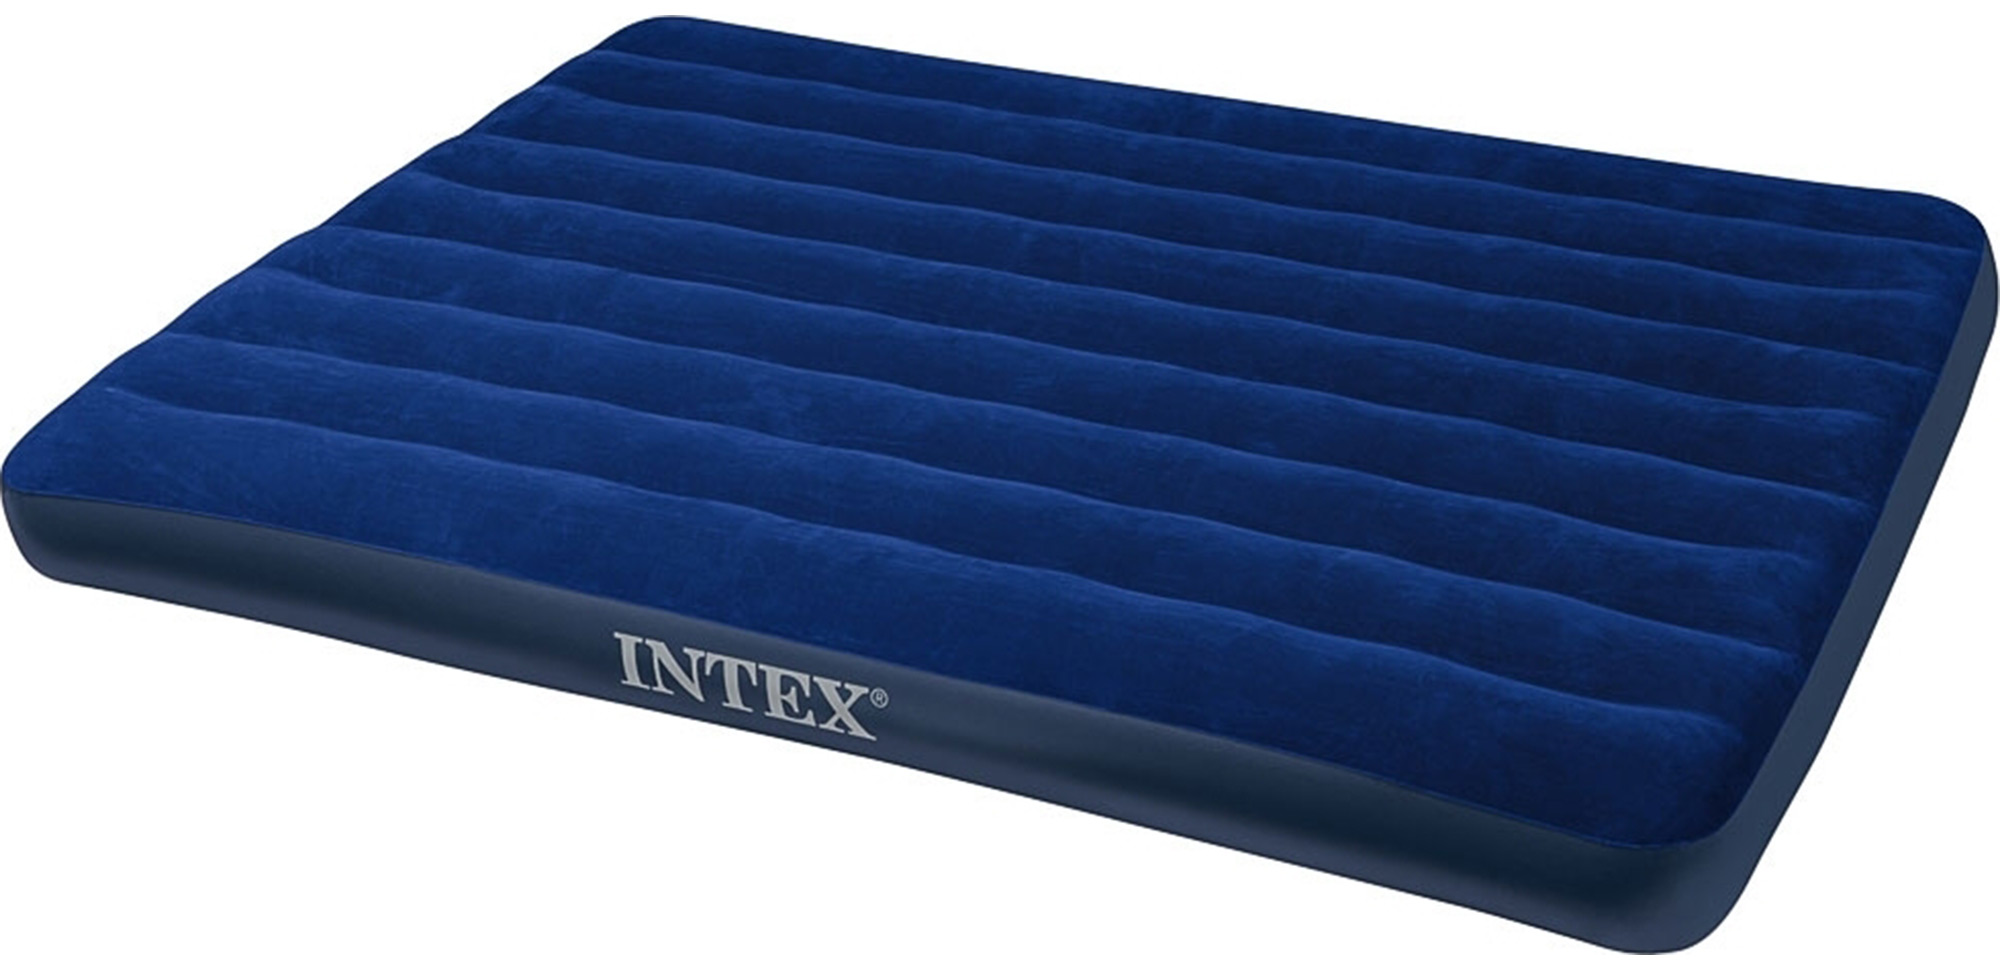 купить Intex Матрас Intex Classic Downy Bed по цене 1699 рублей